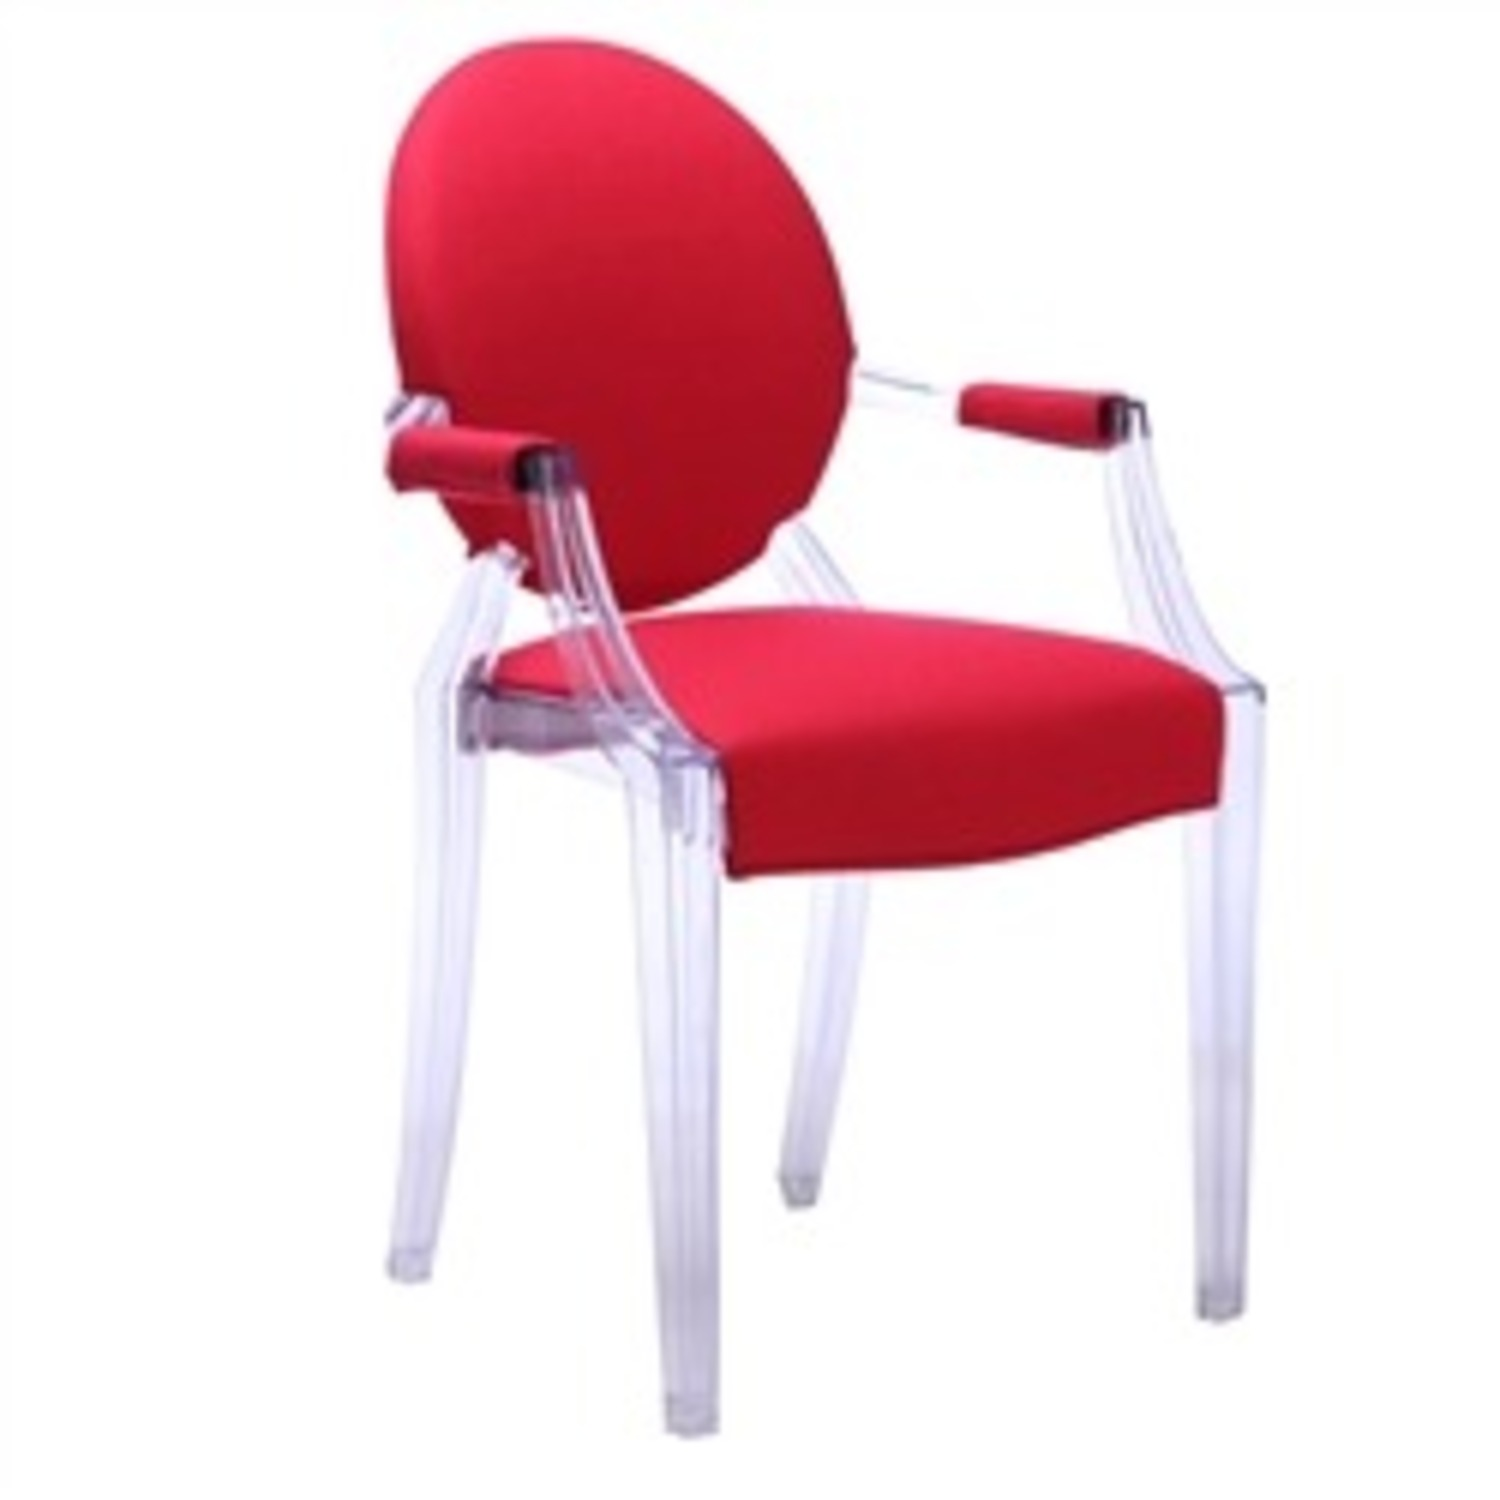 Armchair In Red Fabric & Acrylic Base - image-0